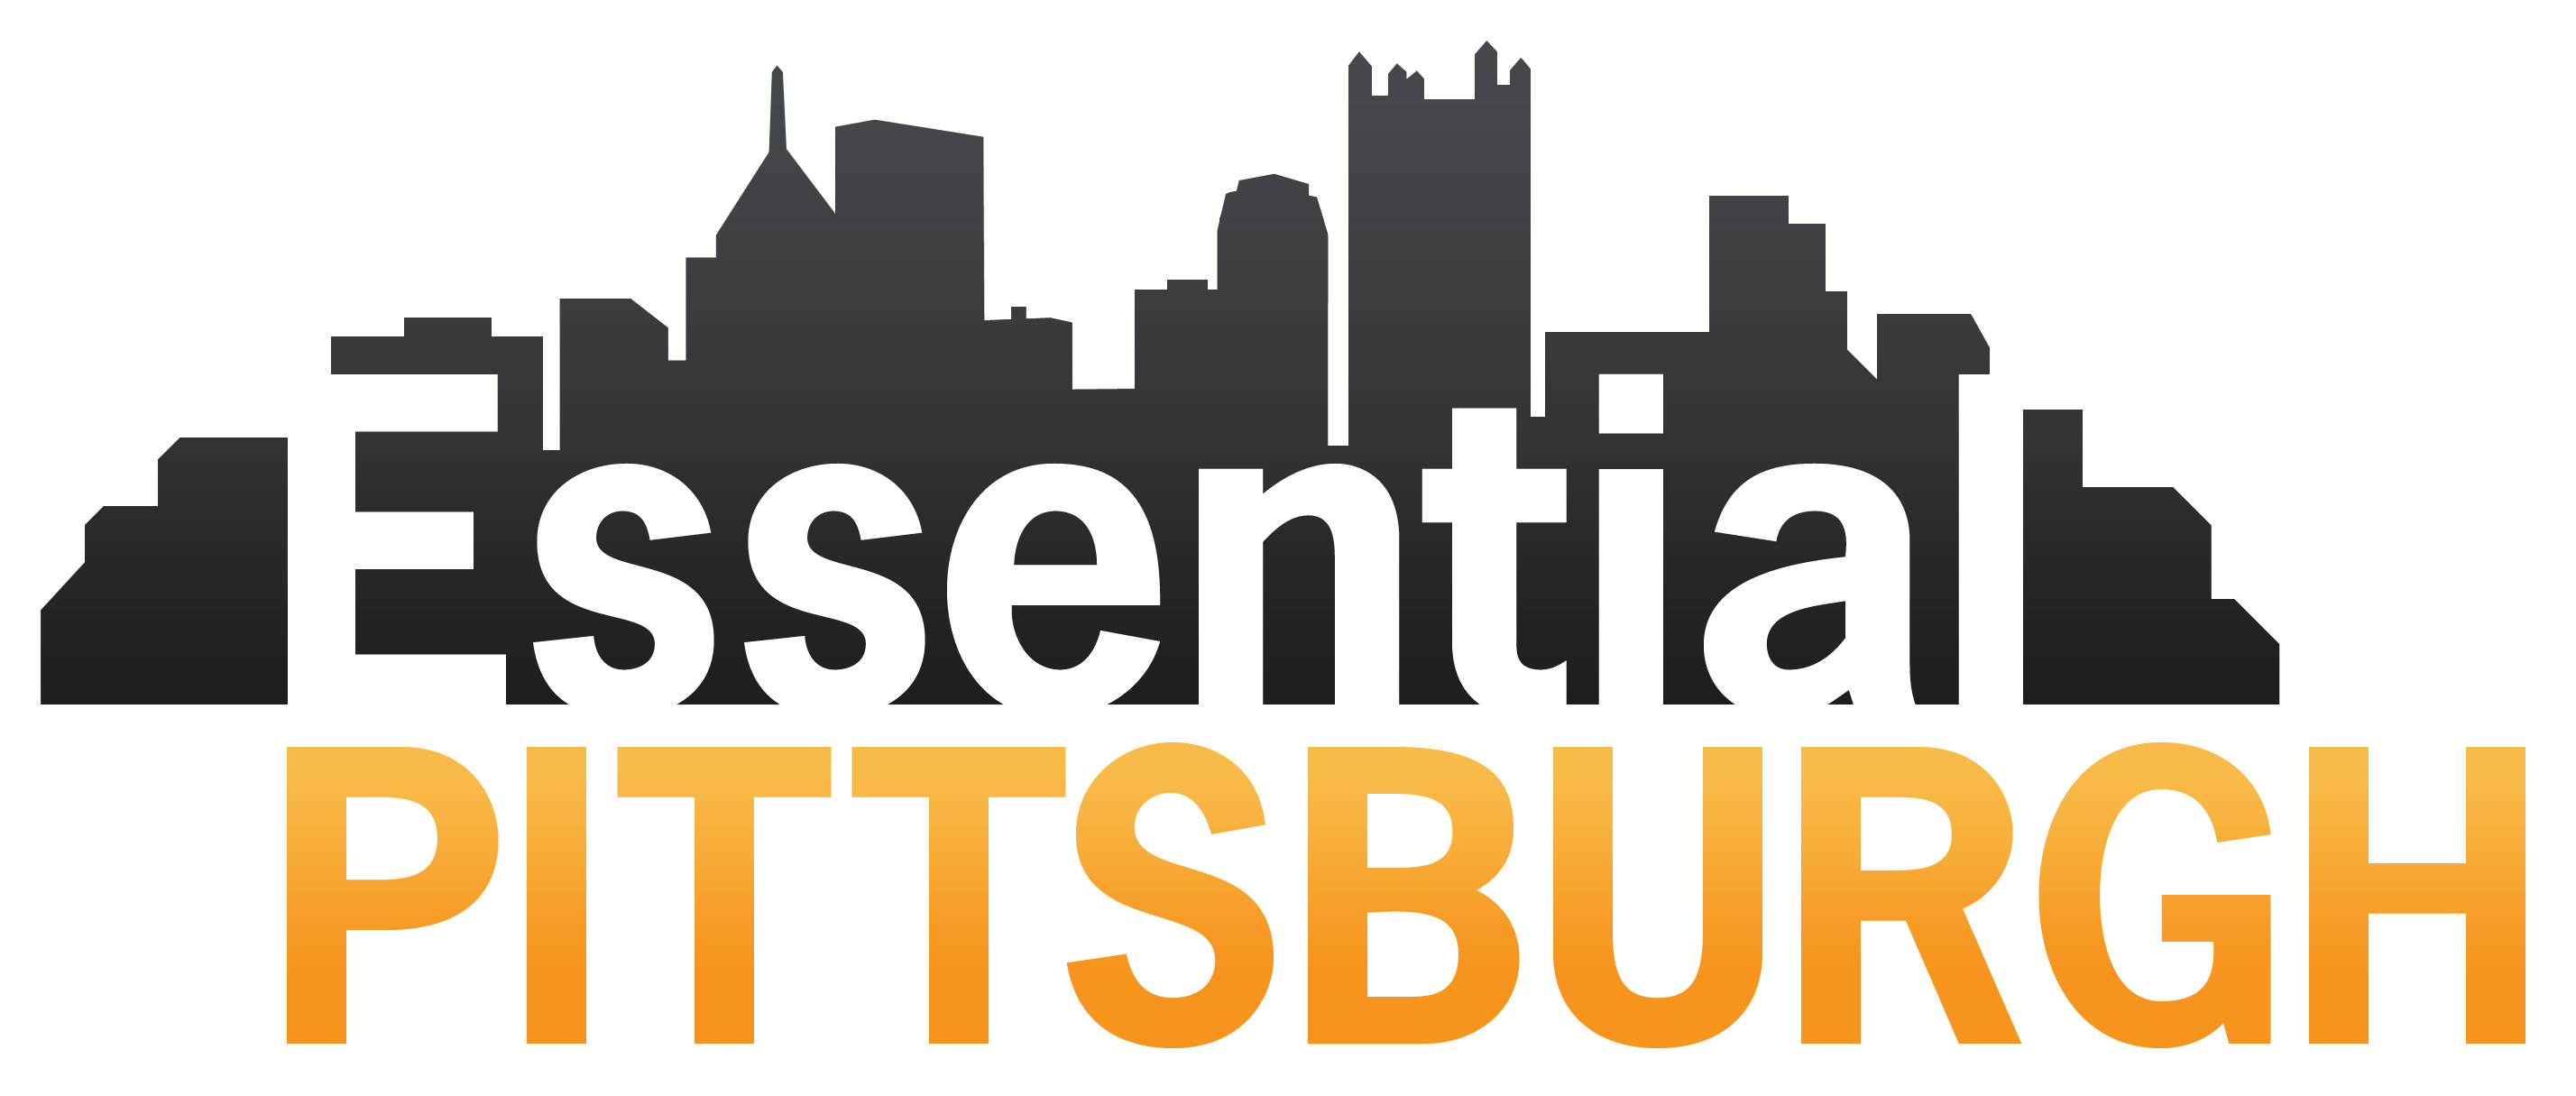 Essential Pittsburgh Archives | 90.5 WESA